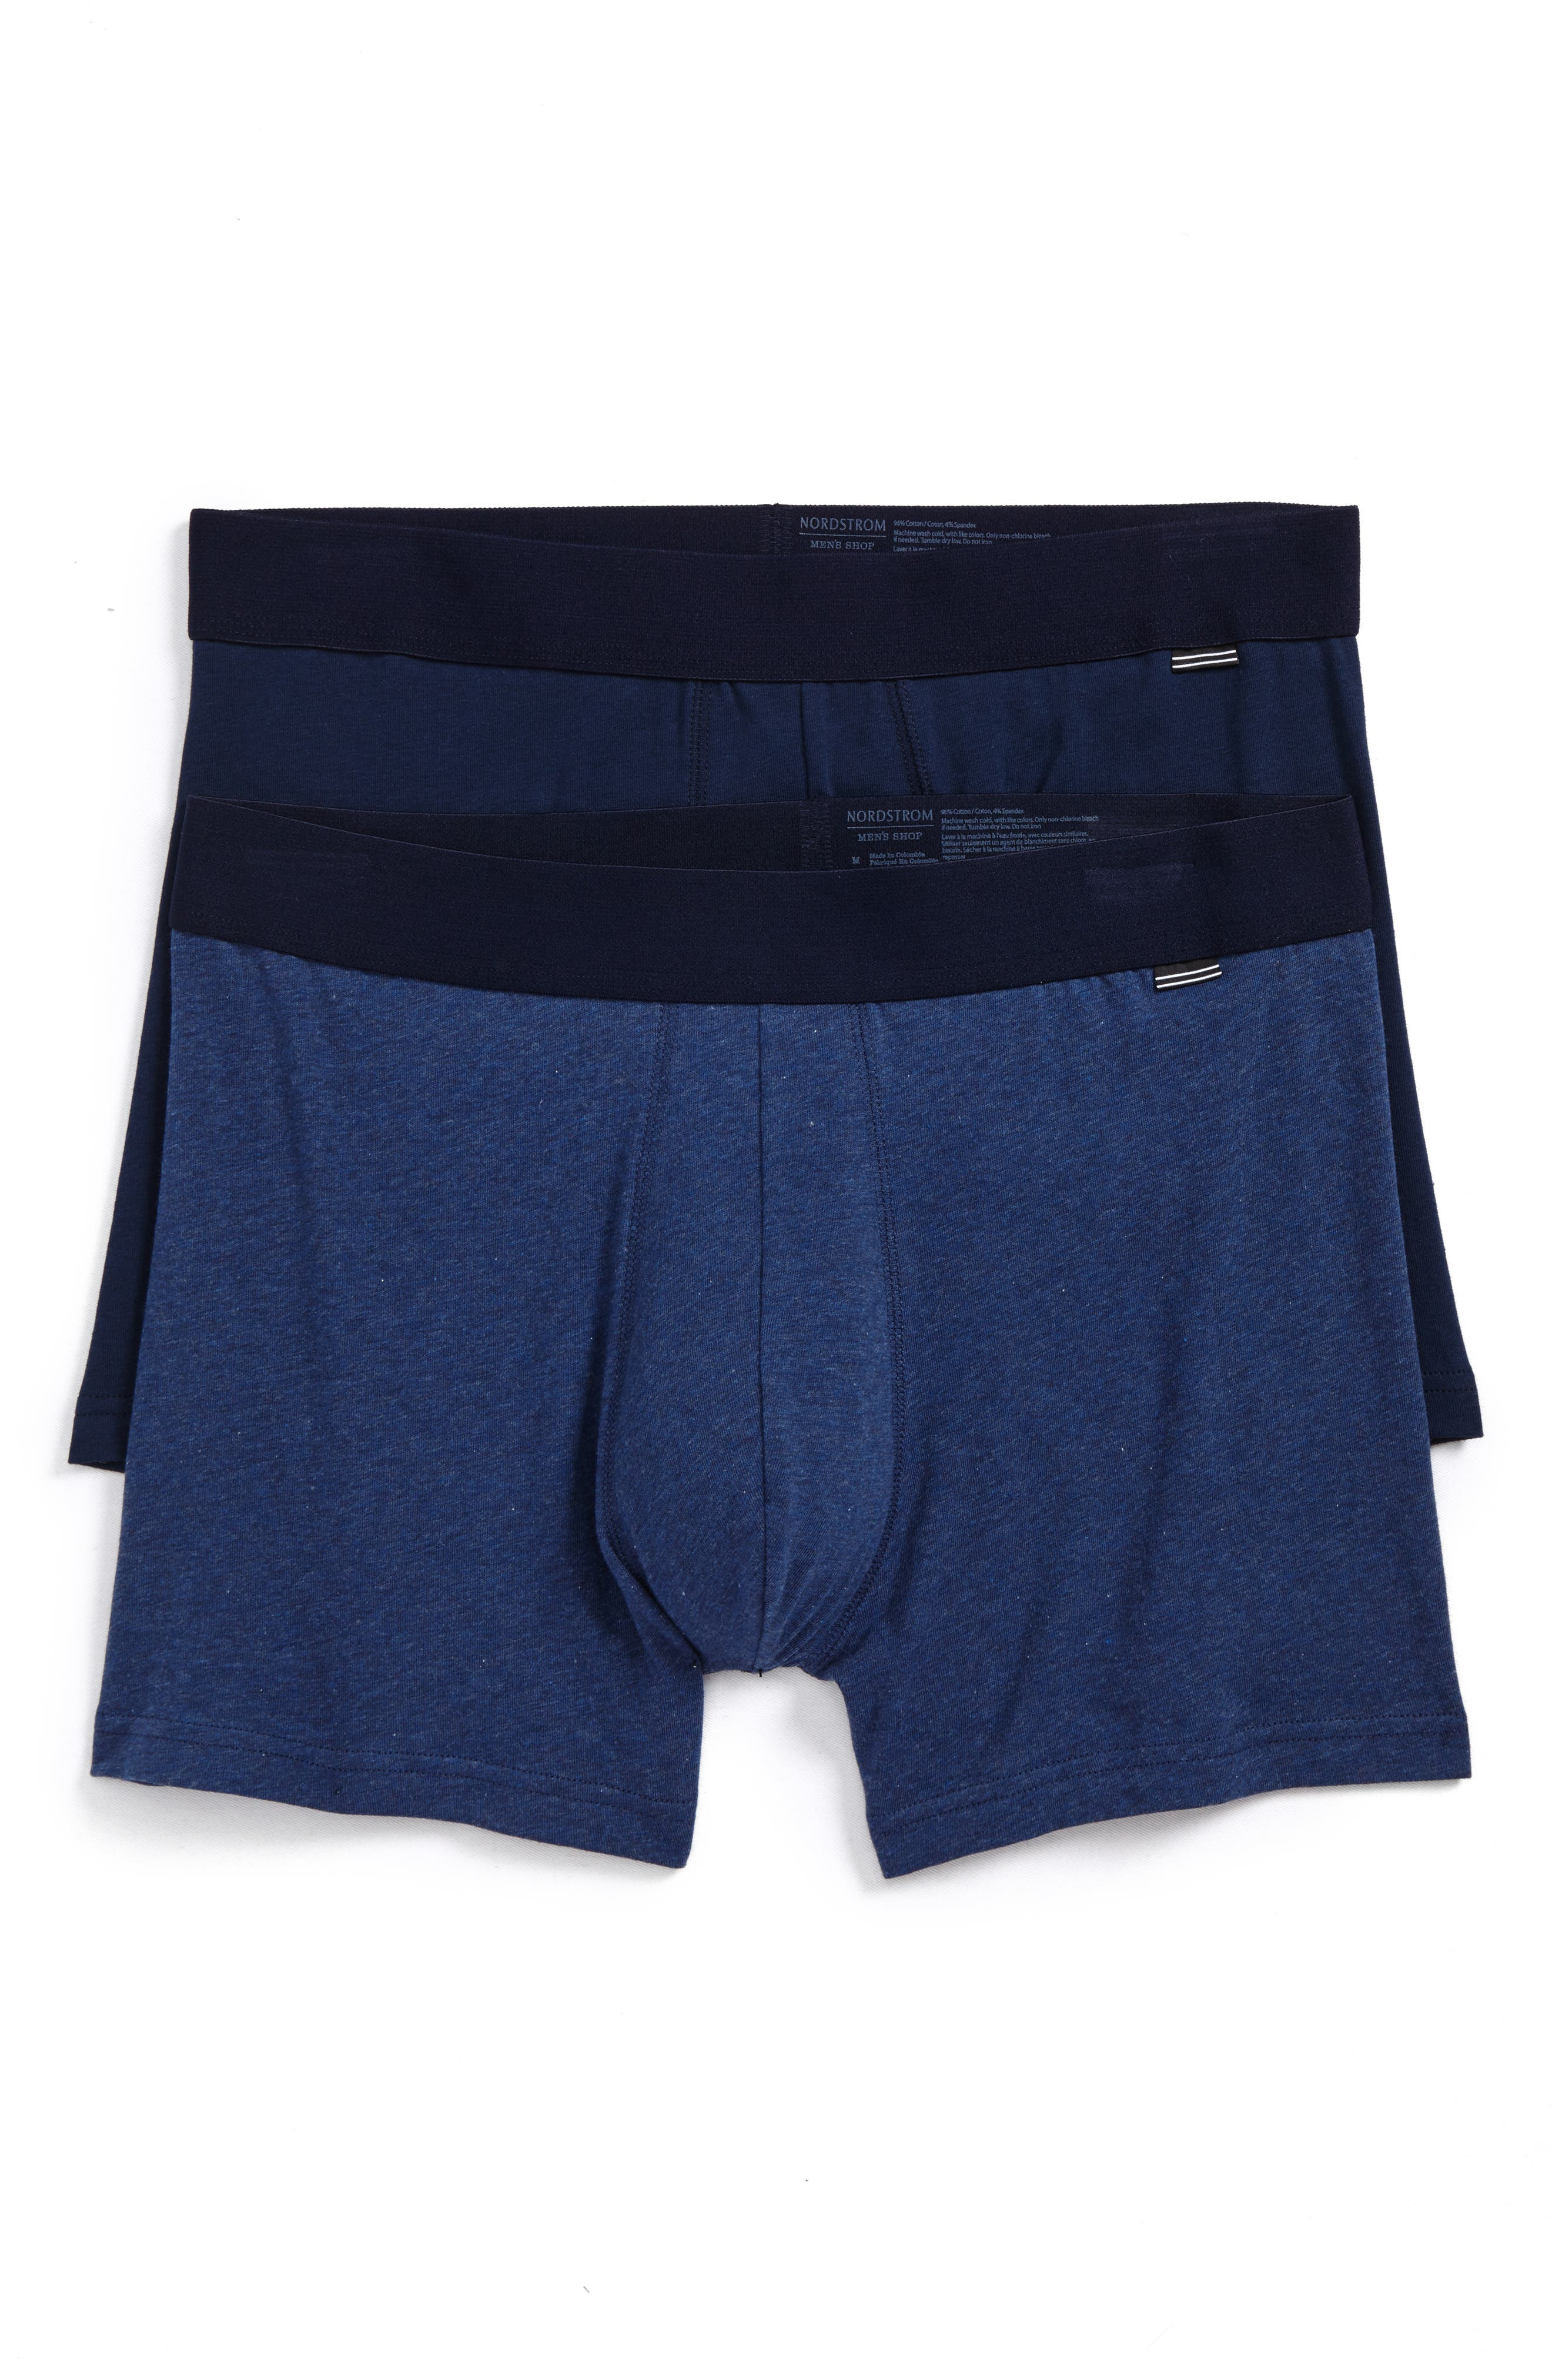 2-Pack Boxer Briefs,                             Main thumbnail 1, color,                             Navy/ Navy Heather